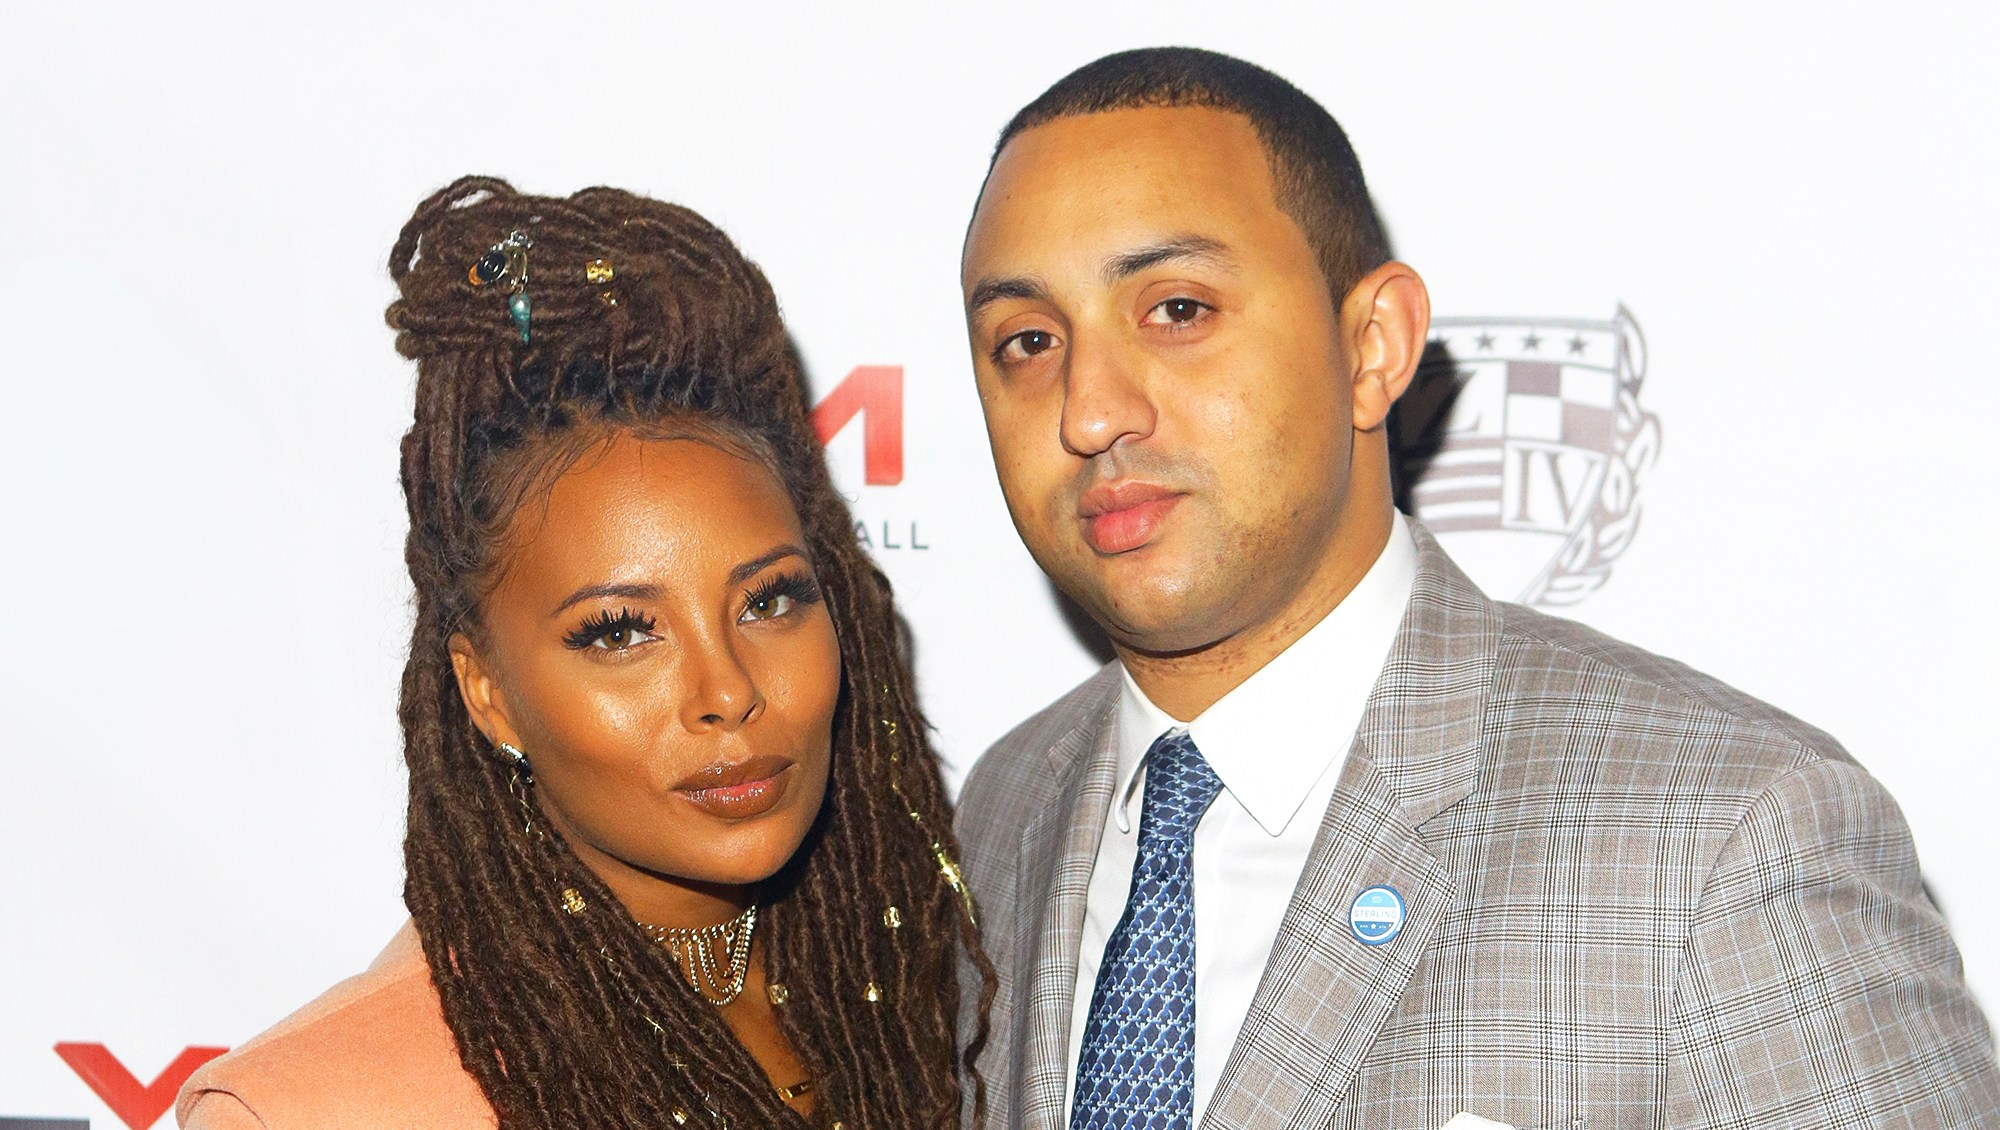 Eva Marcille and Michael Sterling attend the 9th Annual Celebration 4 Cause at King Plow Arts Center in Atlanta on December 22, 2016.